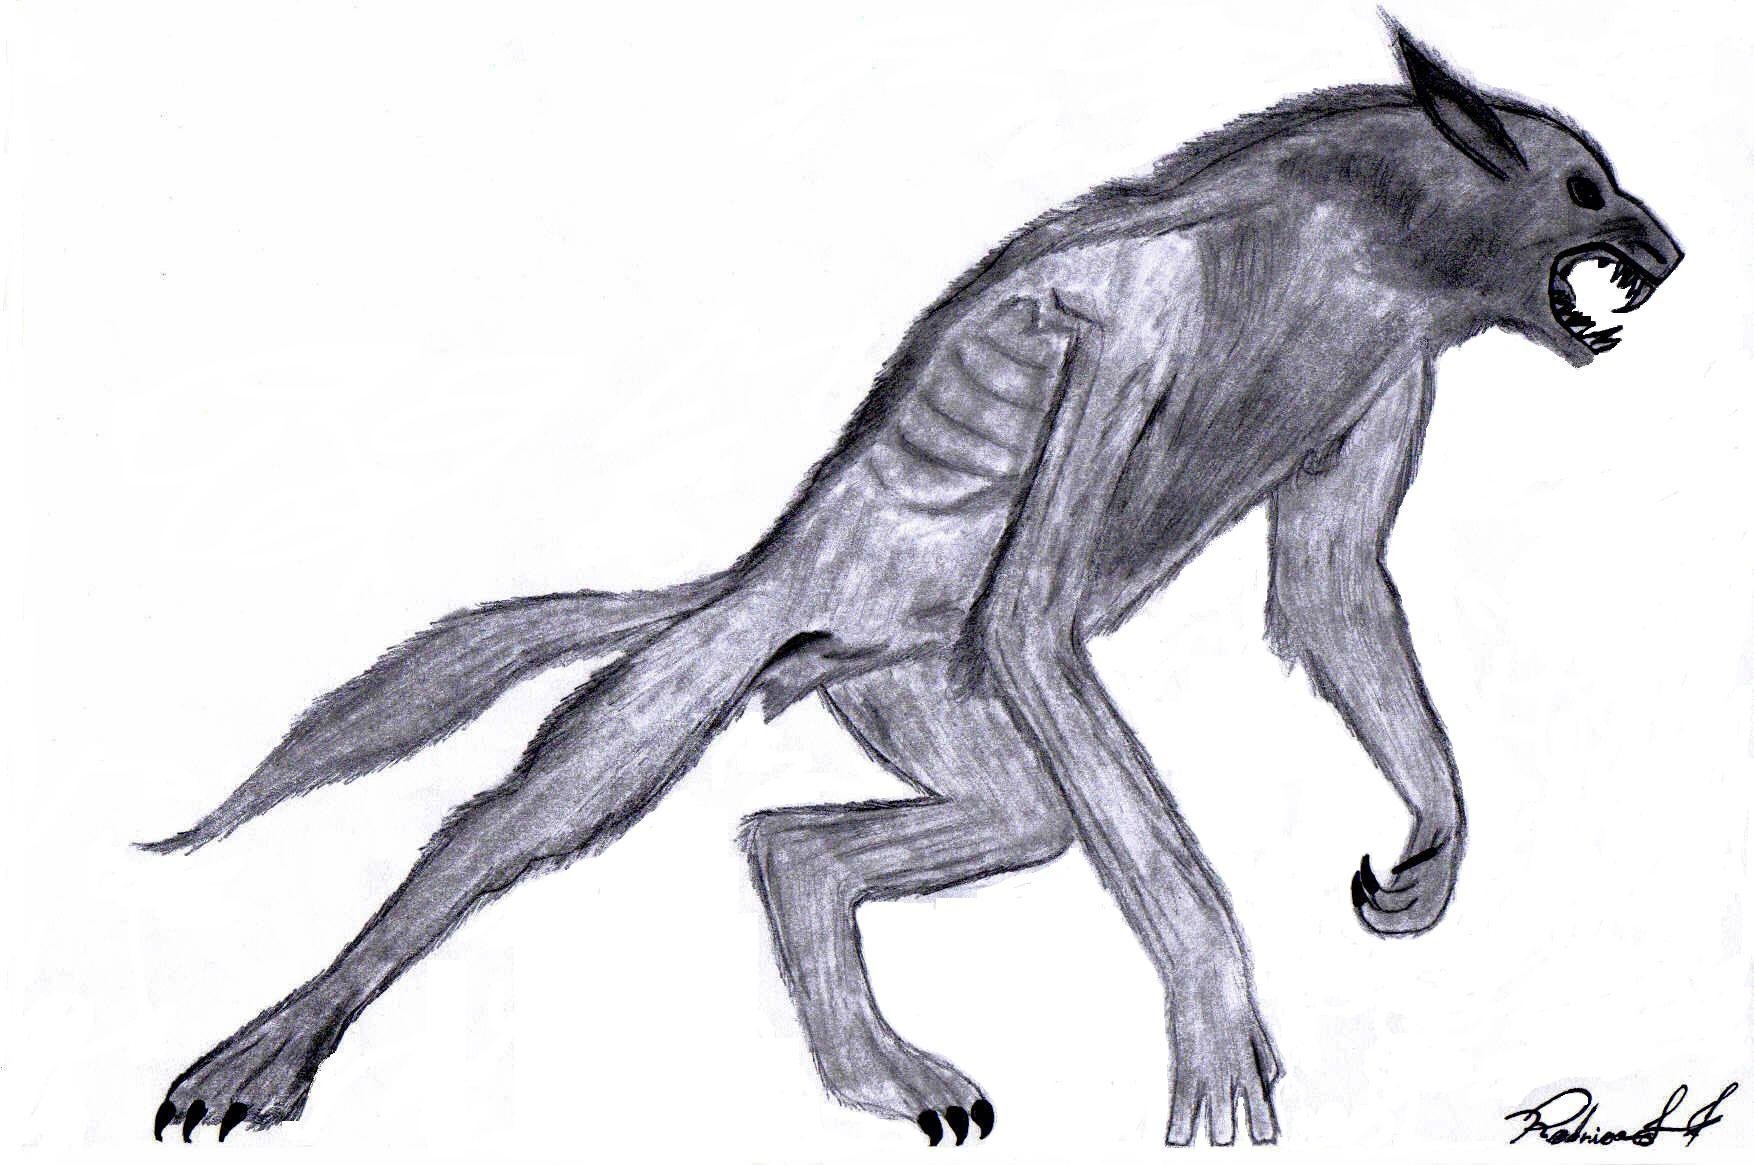 Drawing of a Werewolf